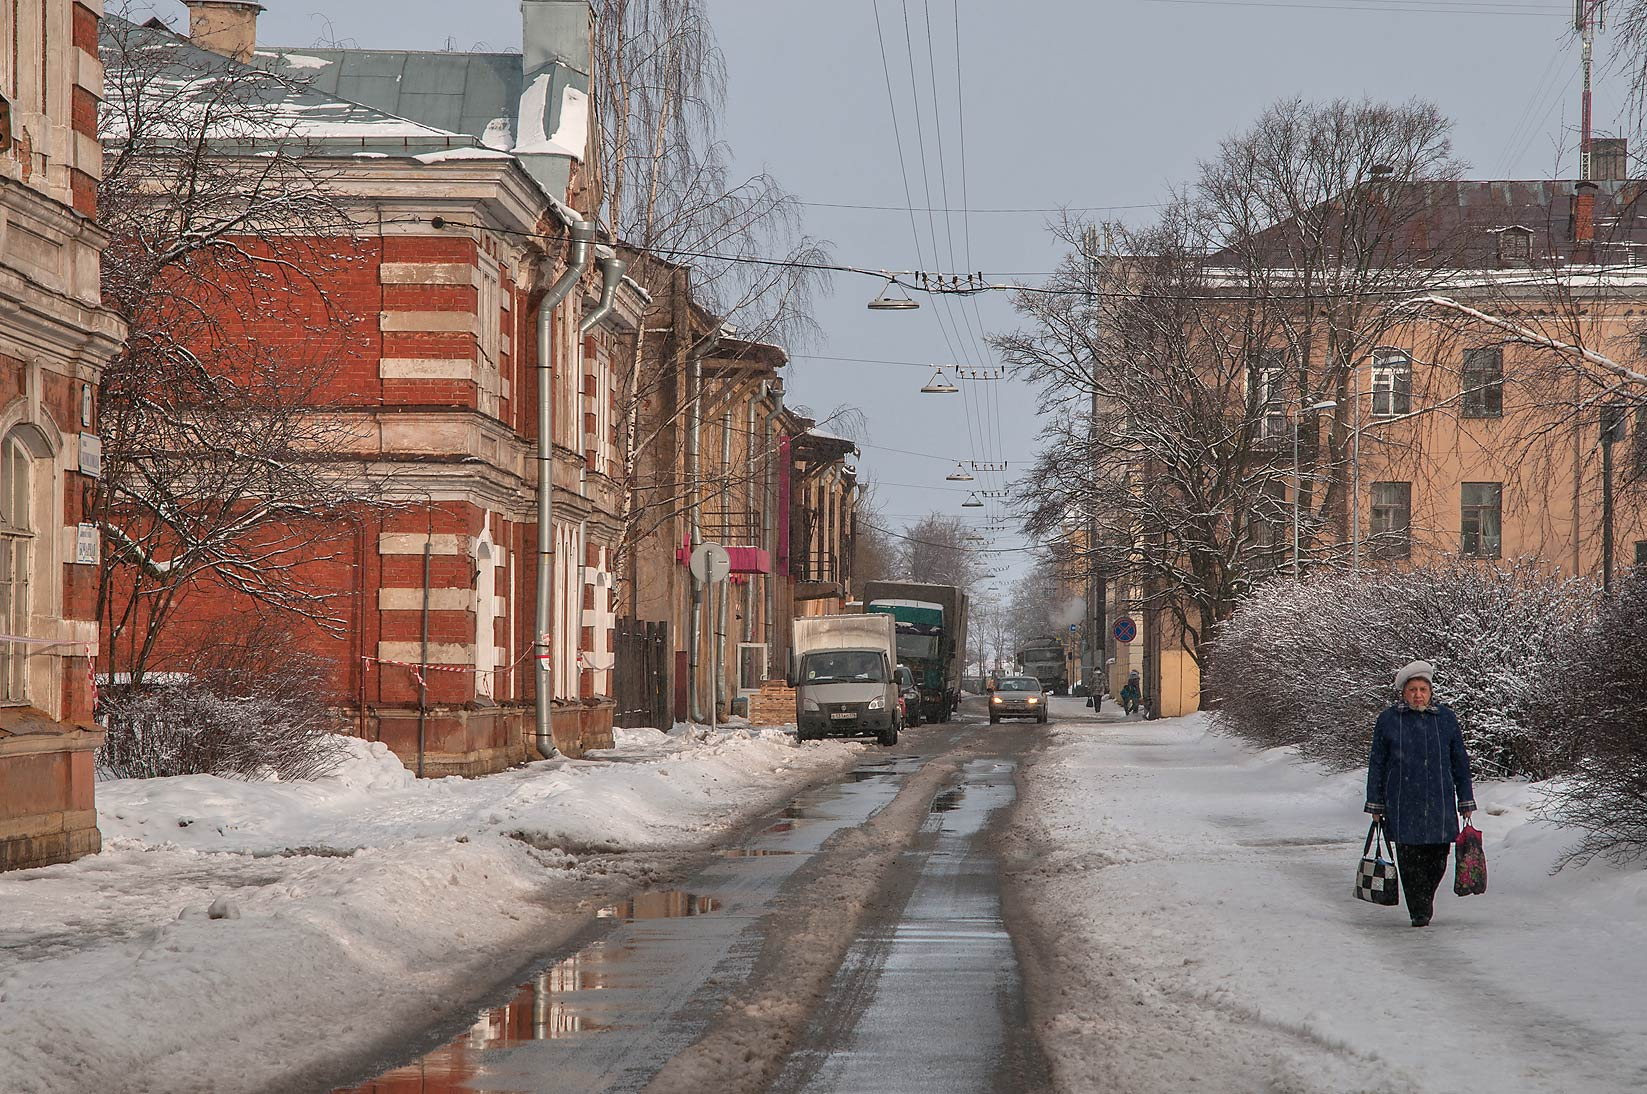 Komsomola St. in snow. Kronstadt (part of St.Petersburg), Russia